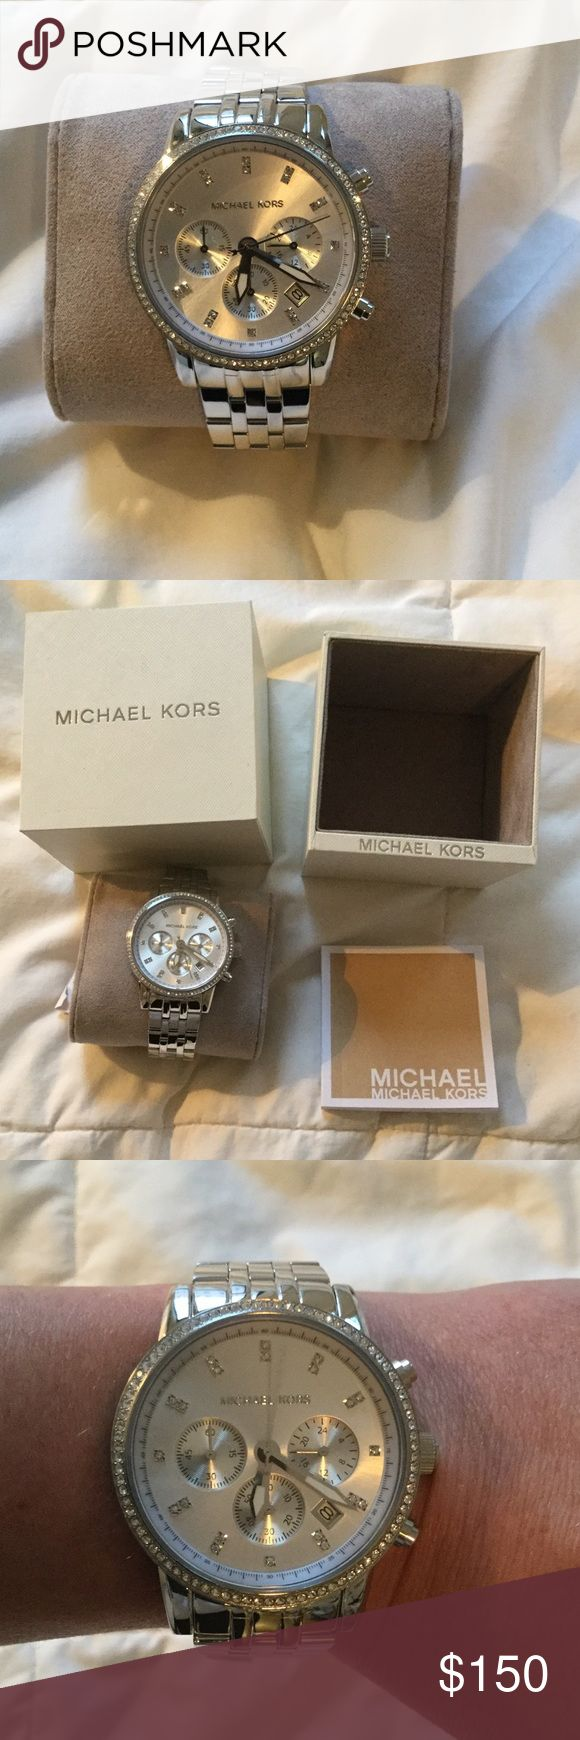 Michael Kors Chronograph Ladies Watch Brand new- still in original packaging. Stainless steel case with stainless steel bracelet model number MK6341. Analog, date display, Sub-dials display: 60 second, 60 minute and 24 hours. Water resistant to 100m/330ft. Dressy watch. Michael Kors Accessories Watches